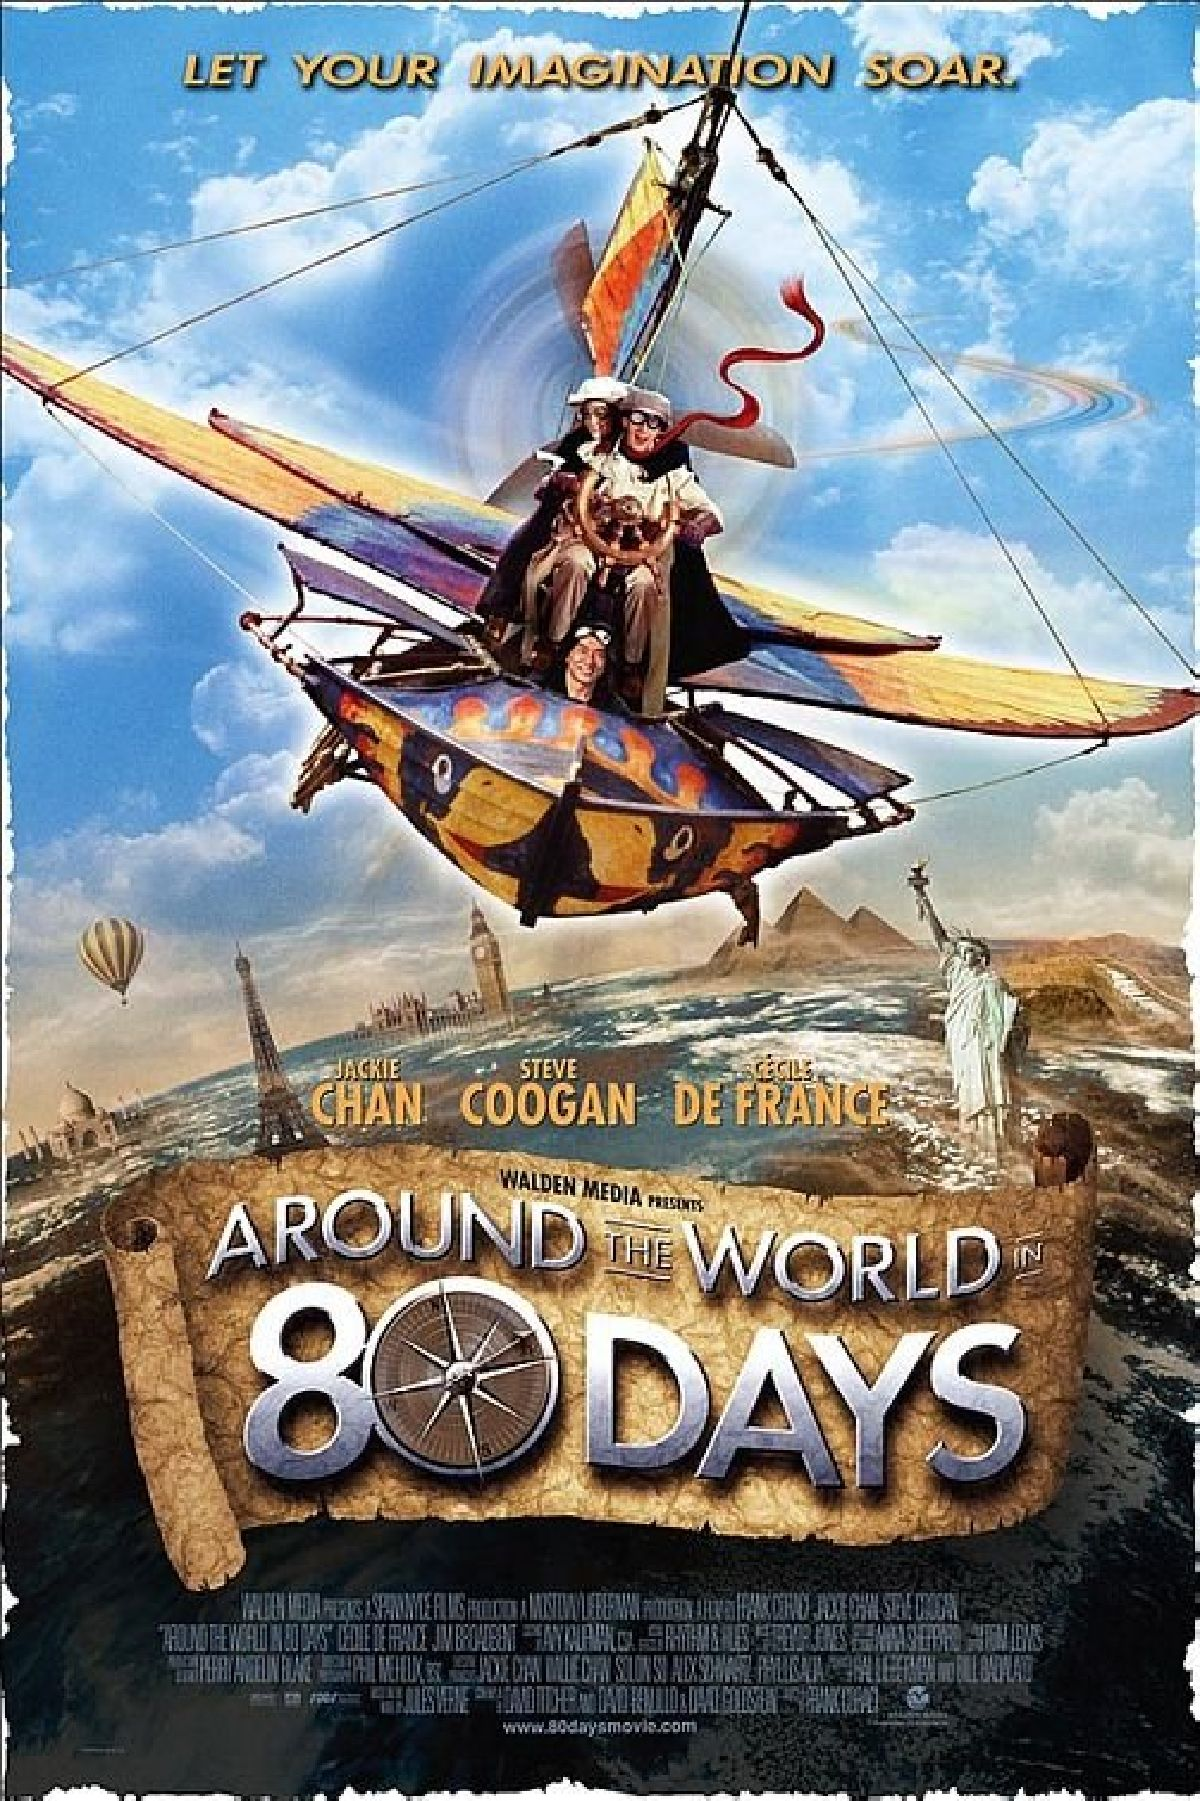 'Around The World In 80 Days' movie poster